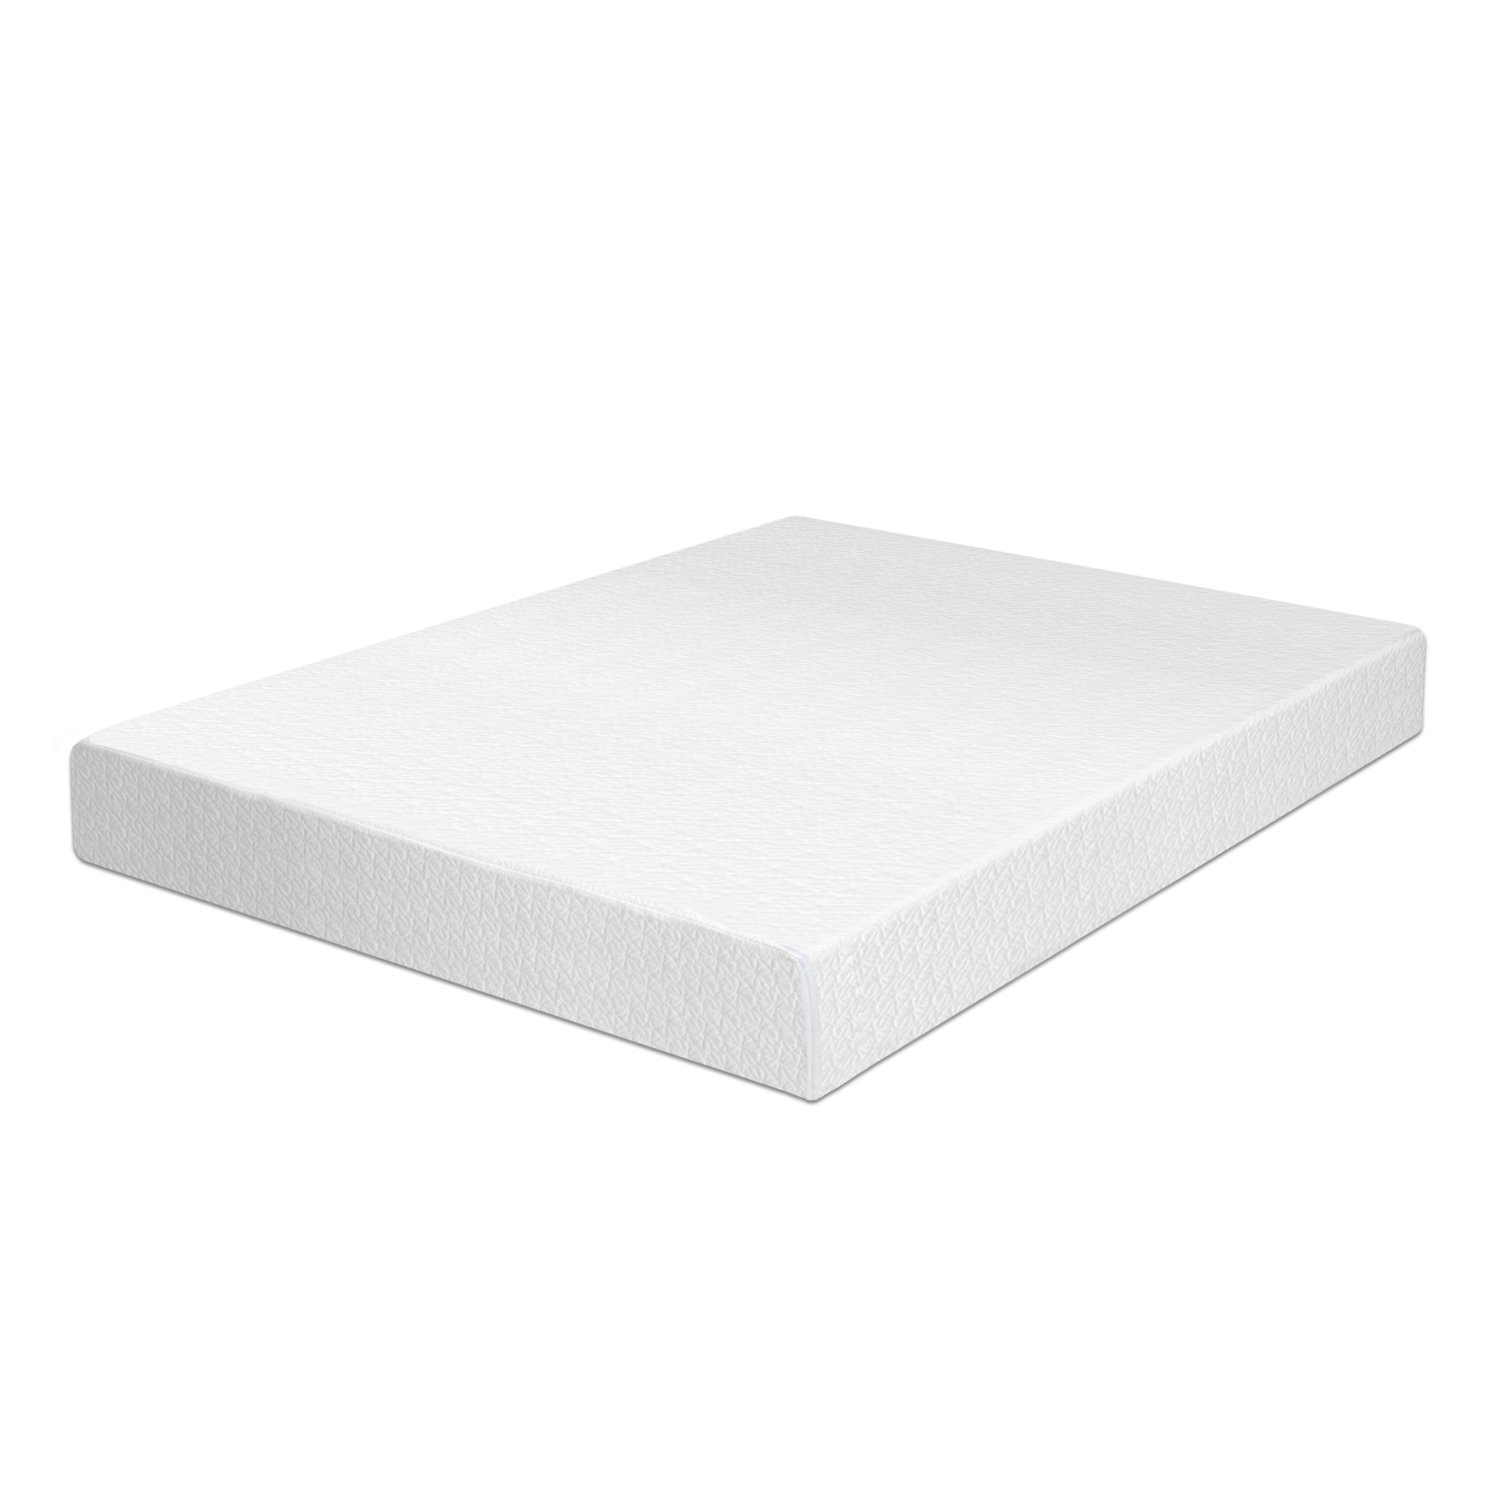 Best Price Mattress 8 Inch Memory Foam Mattress Twin New Free Shipping Ebay